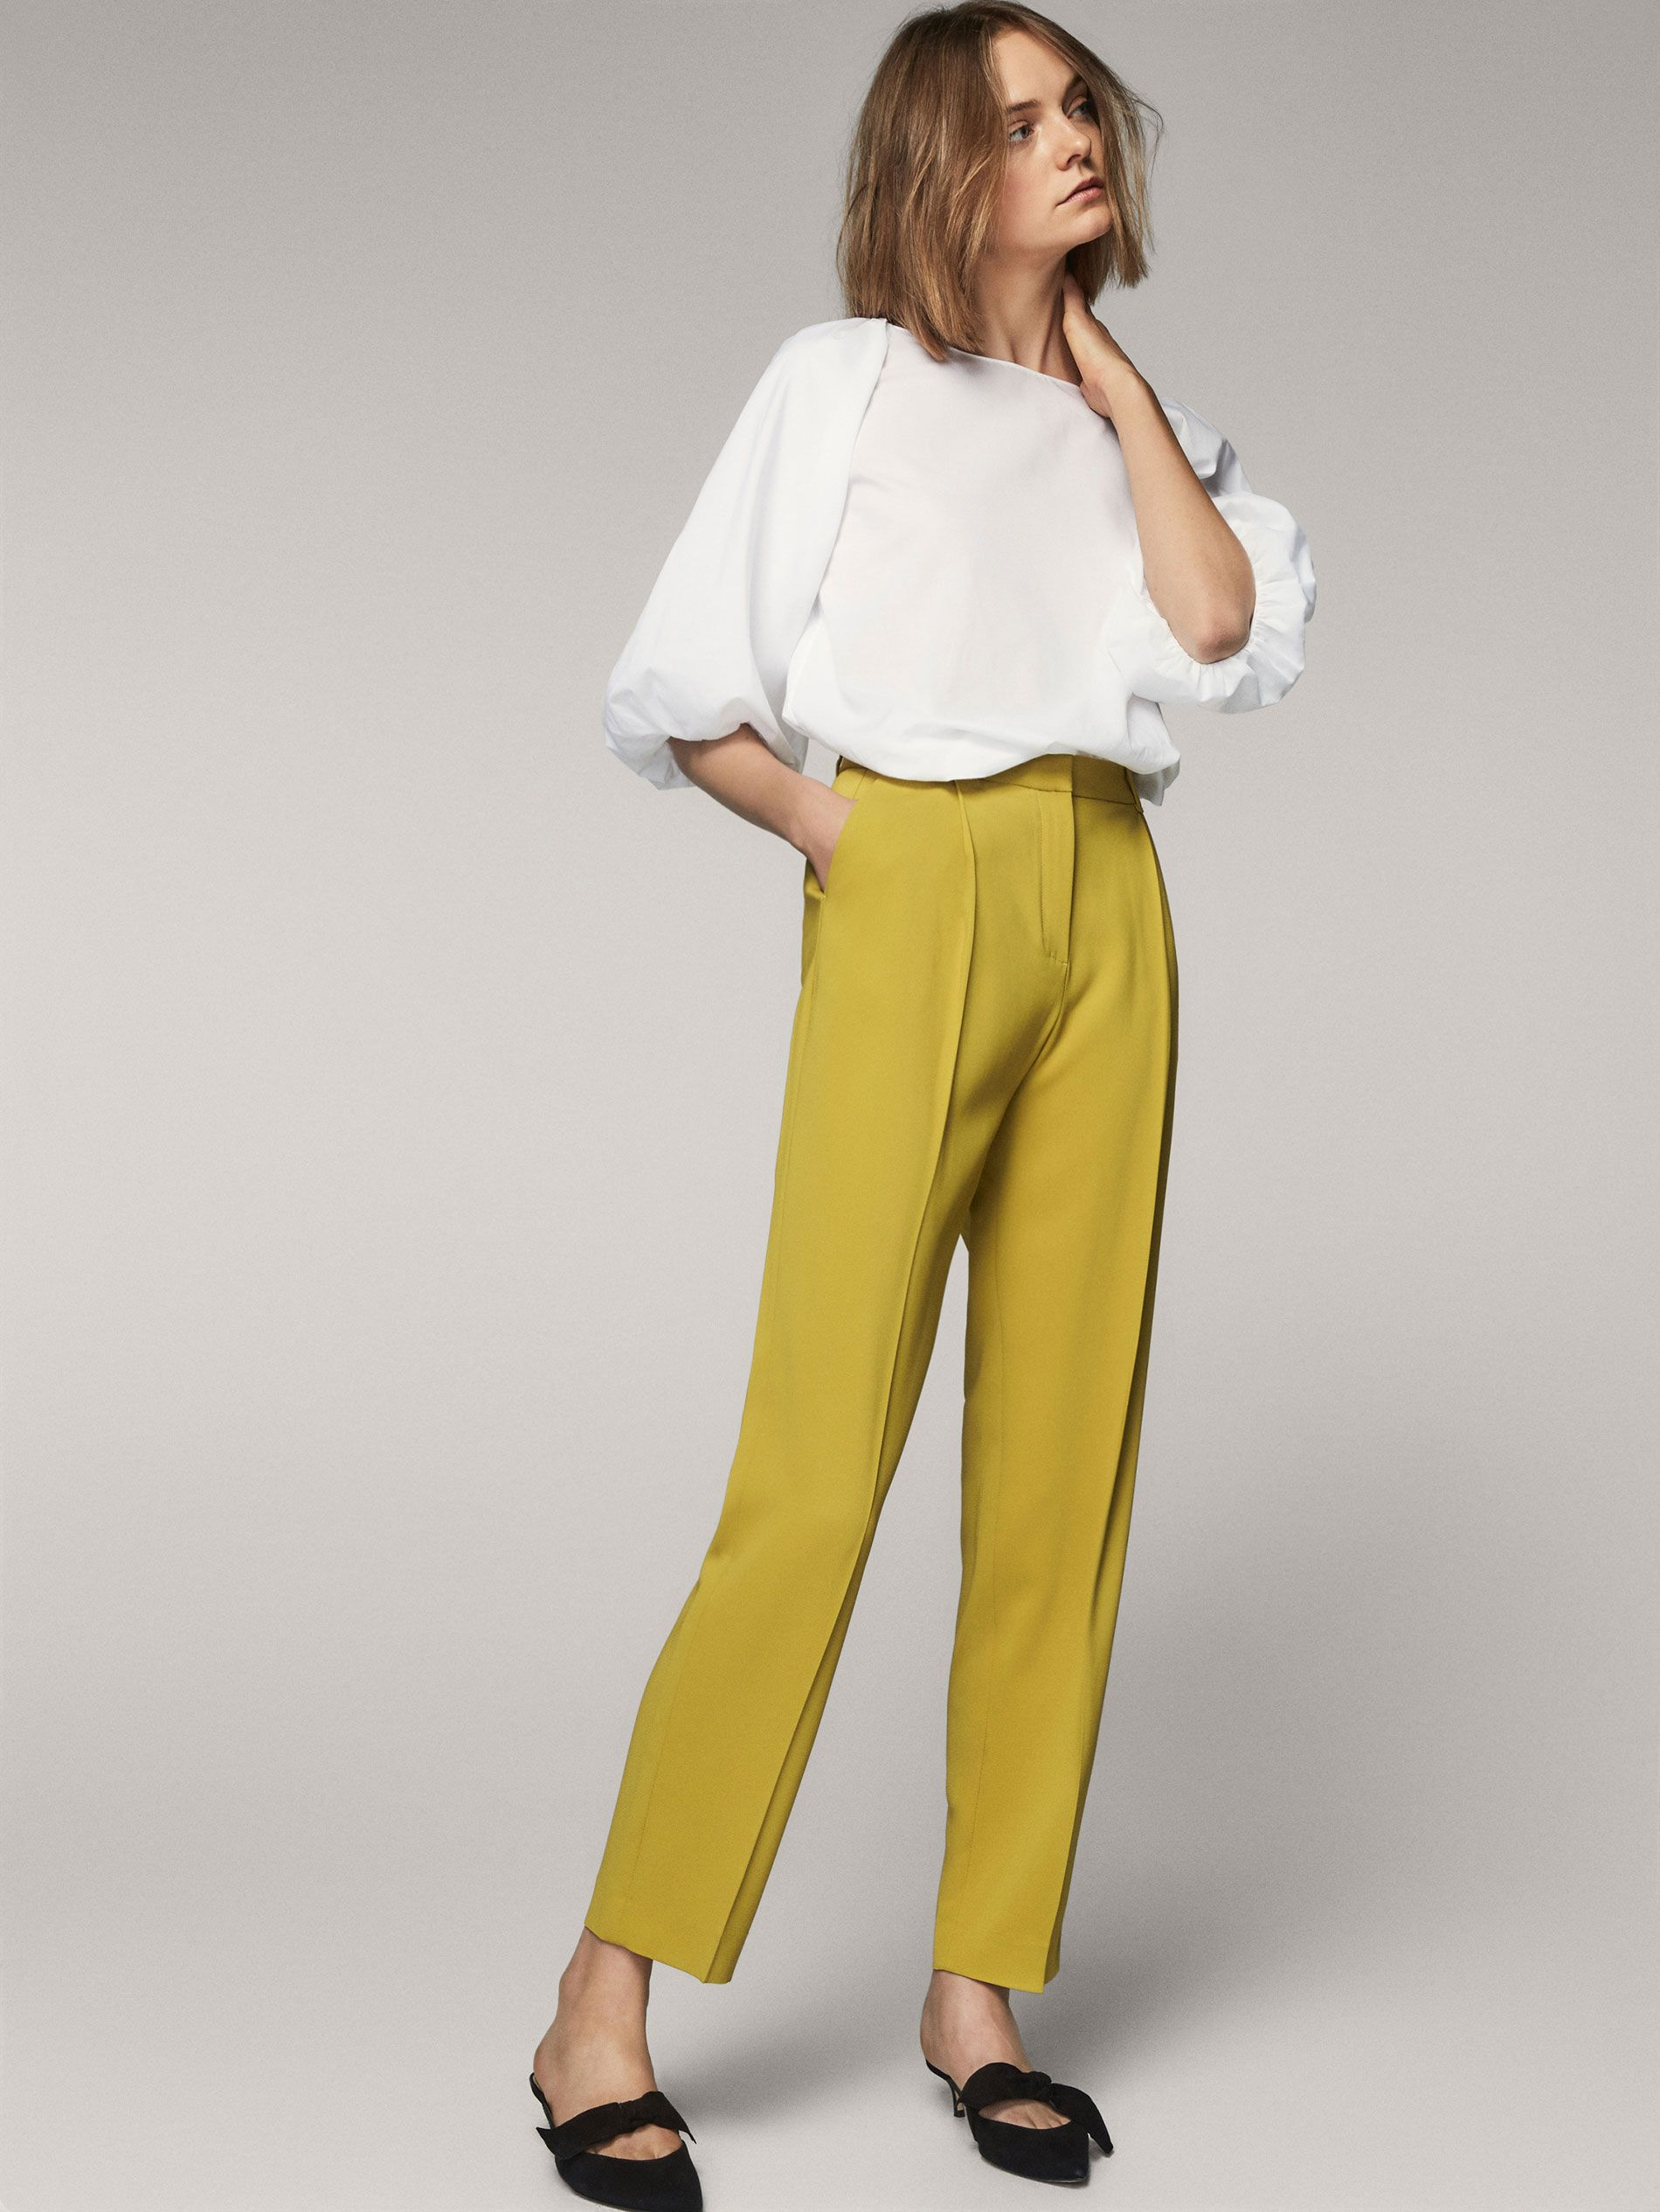 d3febb441b4 Fall Winter 2017 Women´s FLOWING TROUSERS WITH DARTS at Massimo Dutti for  110. Effortless elegance!